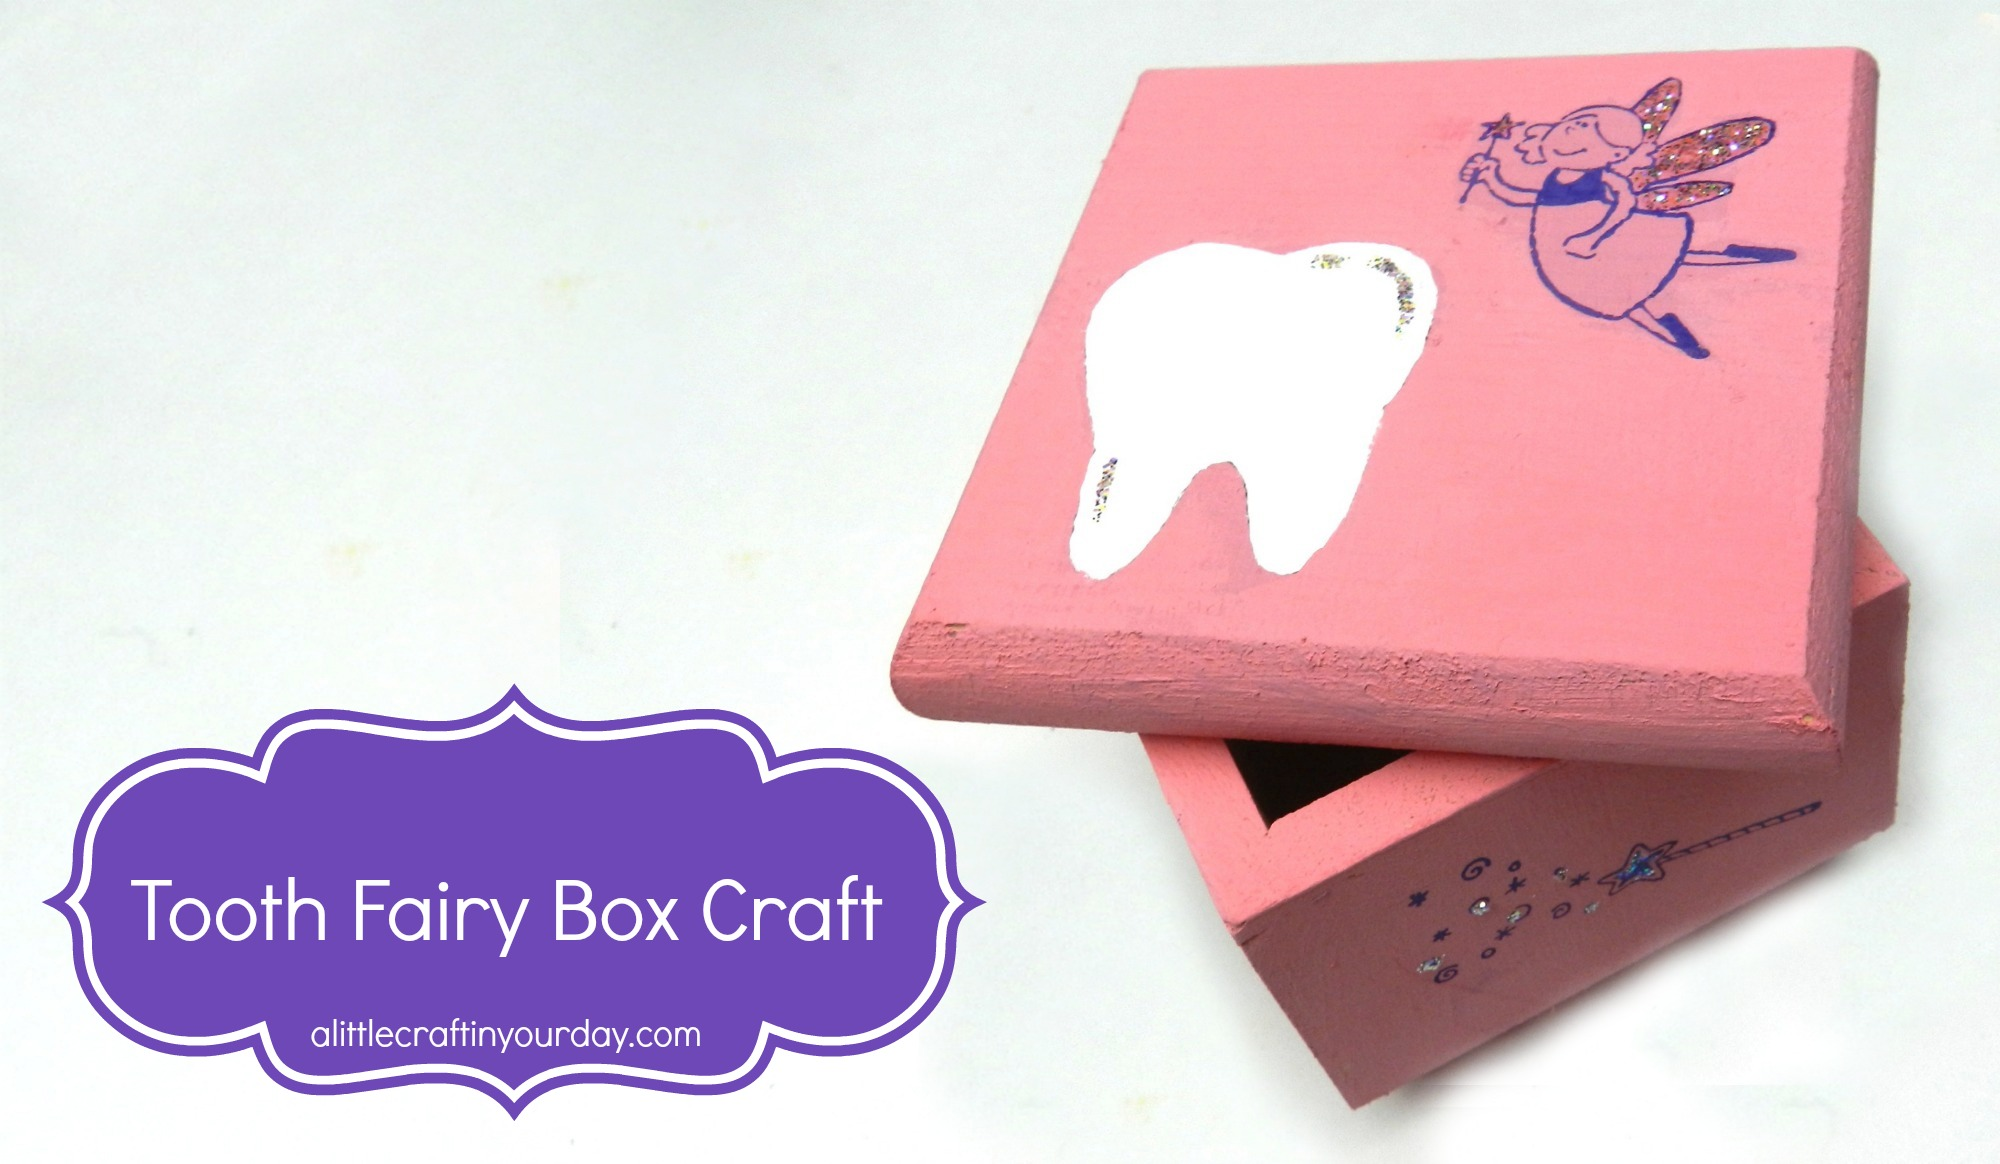 Tooth fairy box craft - 12 31 Tooth Box Craft